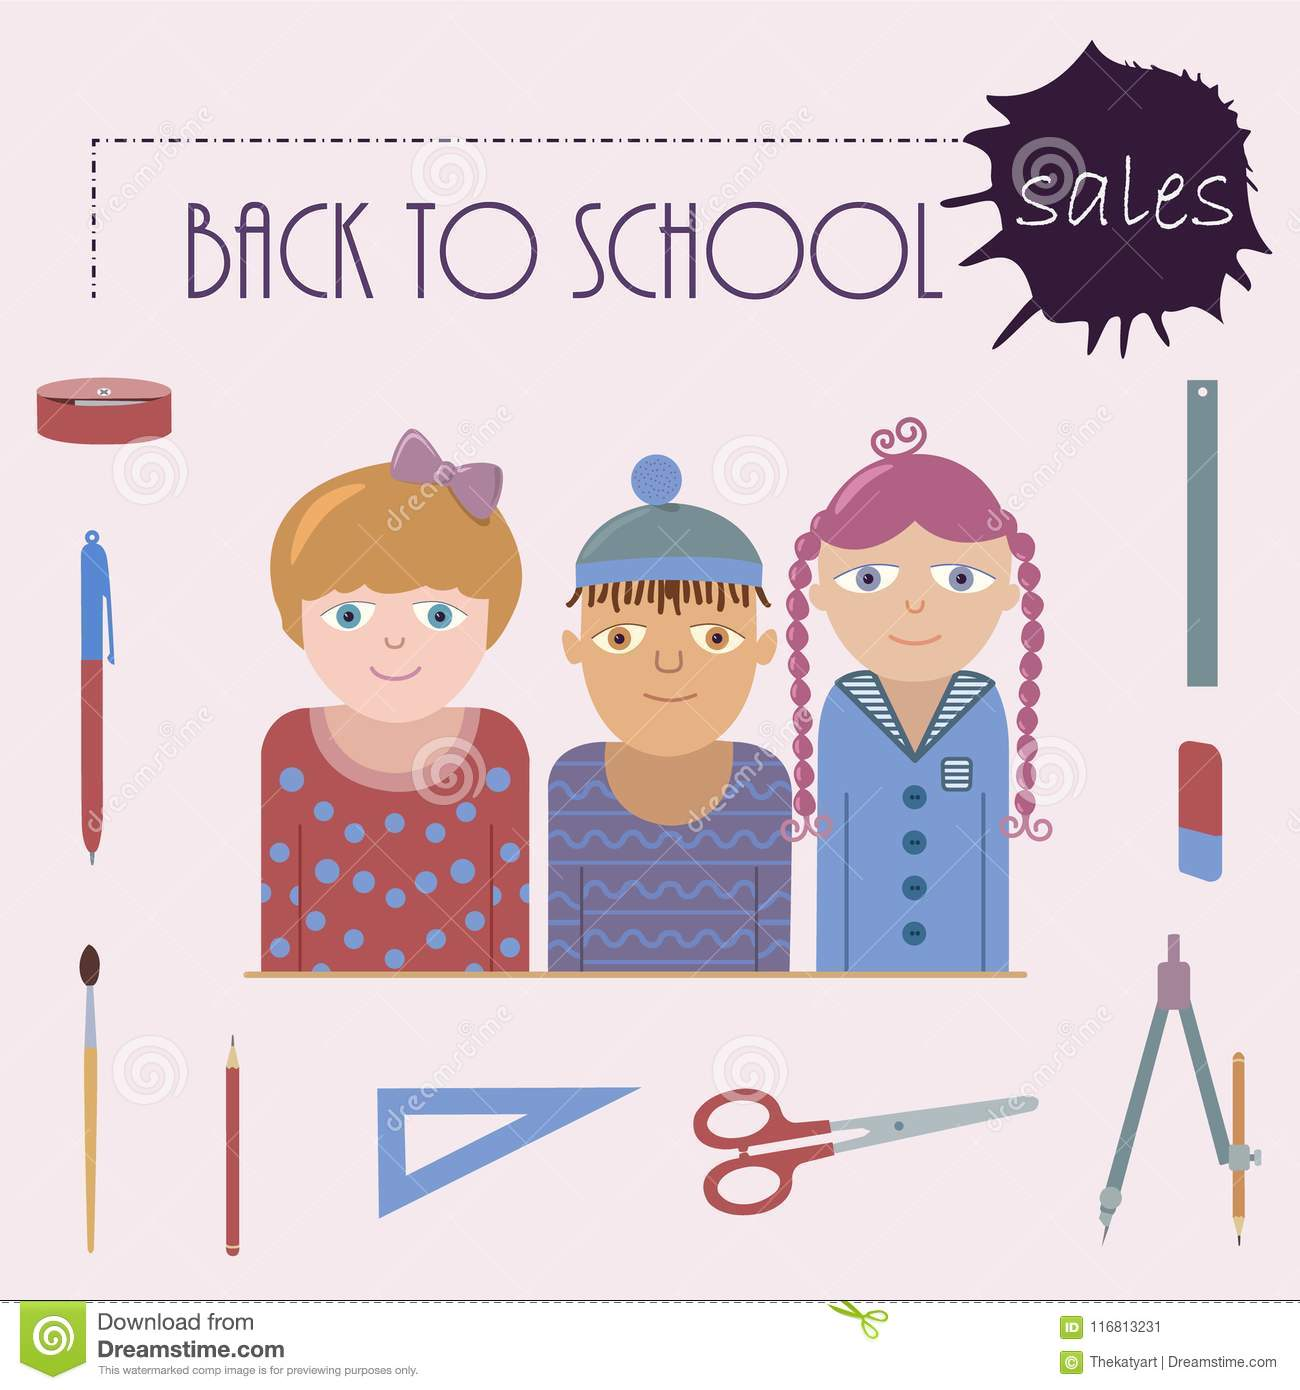 Poster representing back to school sales.